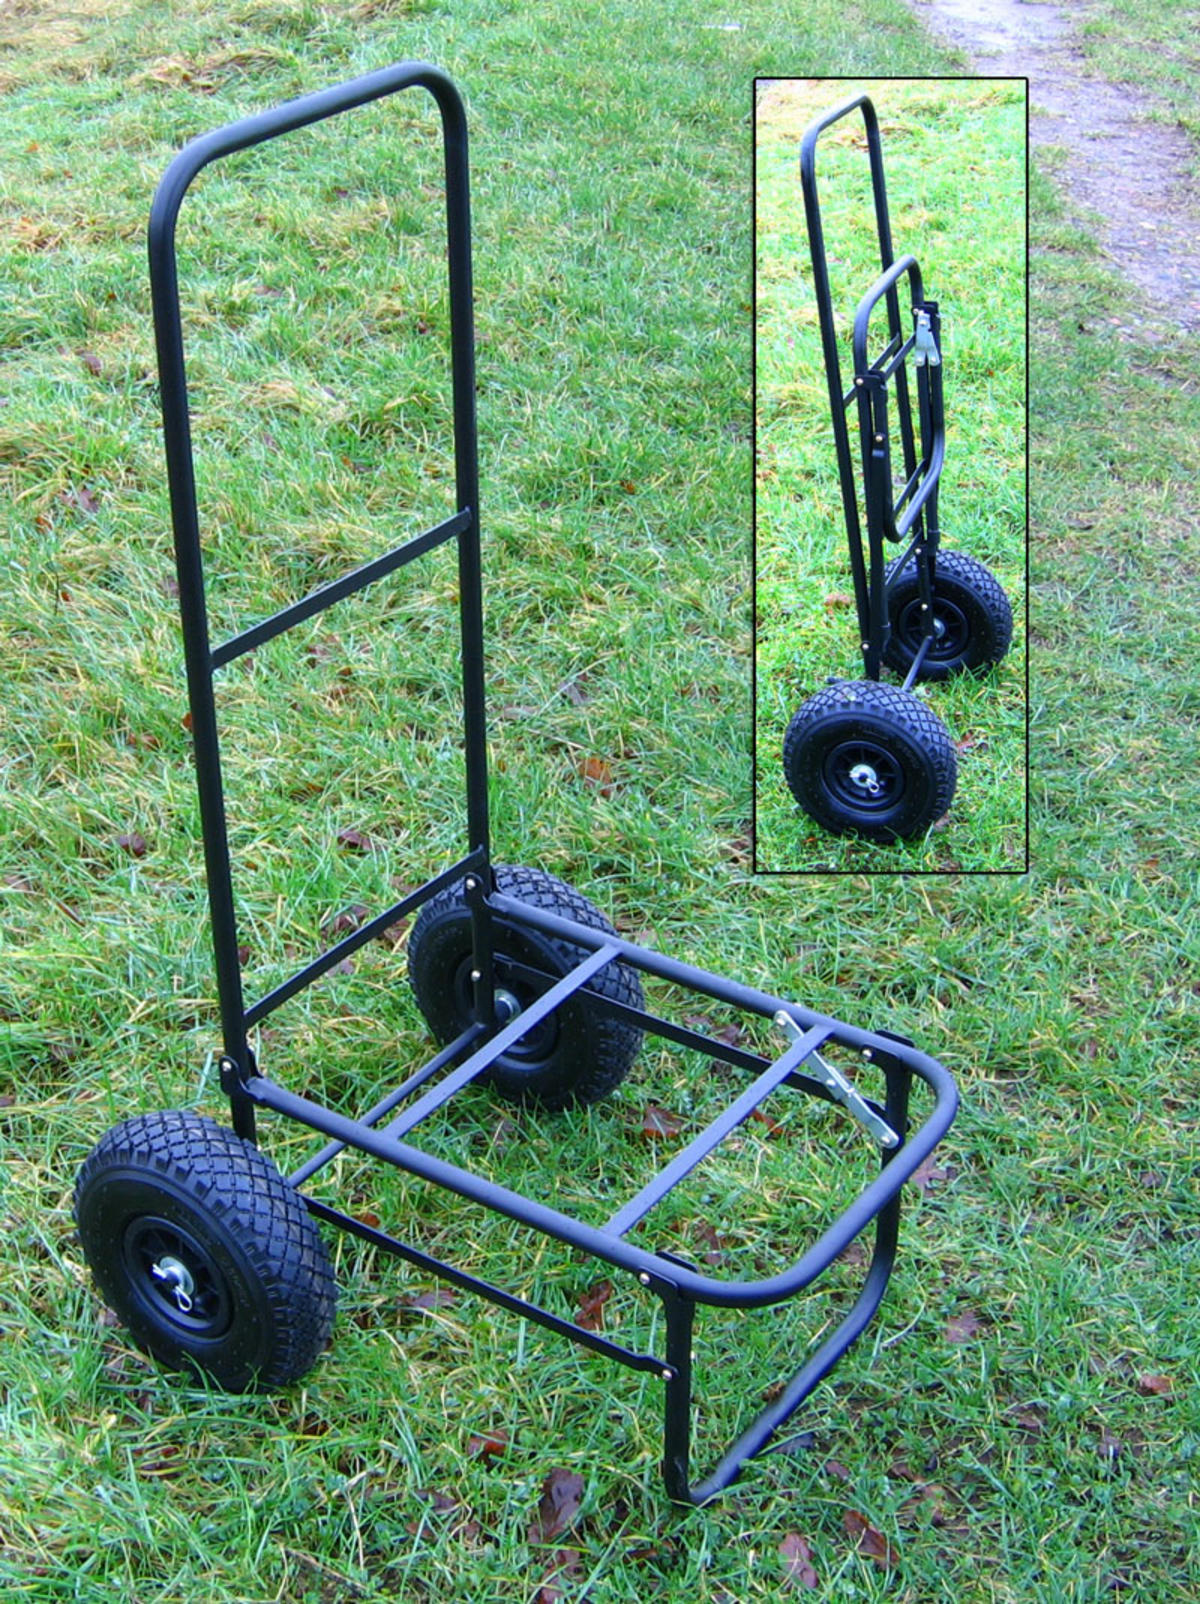 New Bison Folding Fishing Seat Box Trolley With Pnuematic